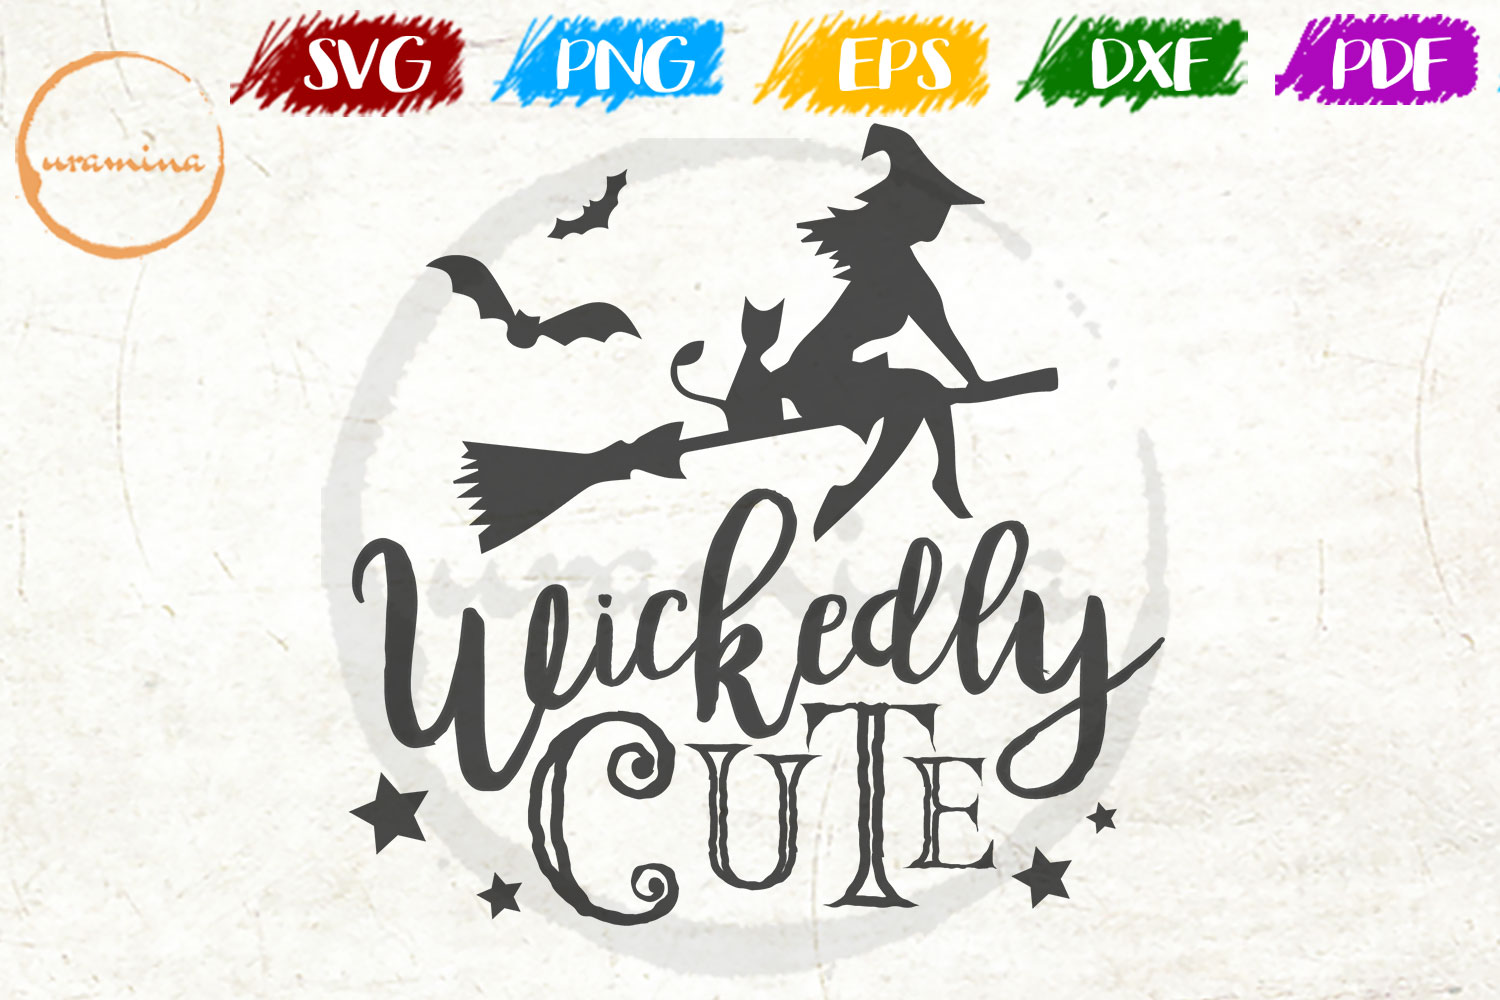 Download Free Wickedly Cute Graphic By Uramina Creative Fabrica for Cricut Explore, Silhouette and other cutting machines.